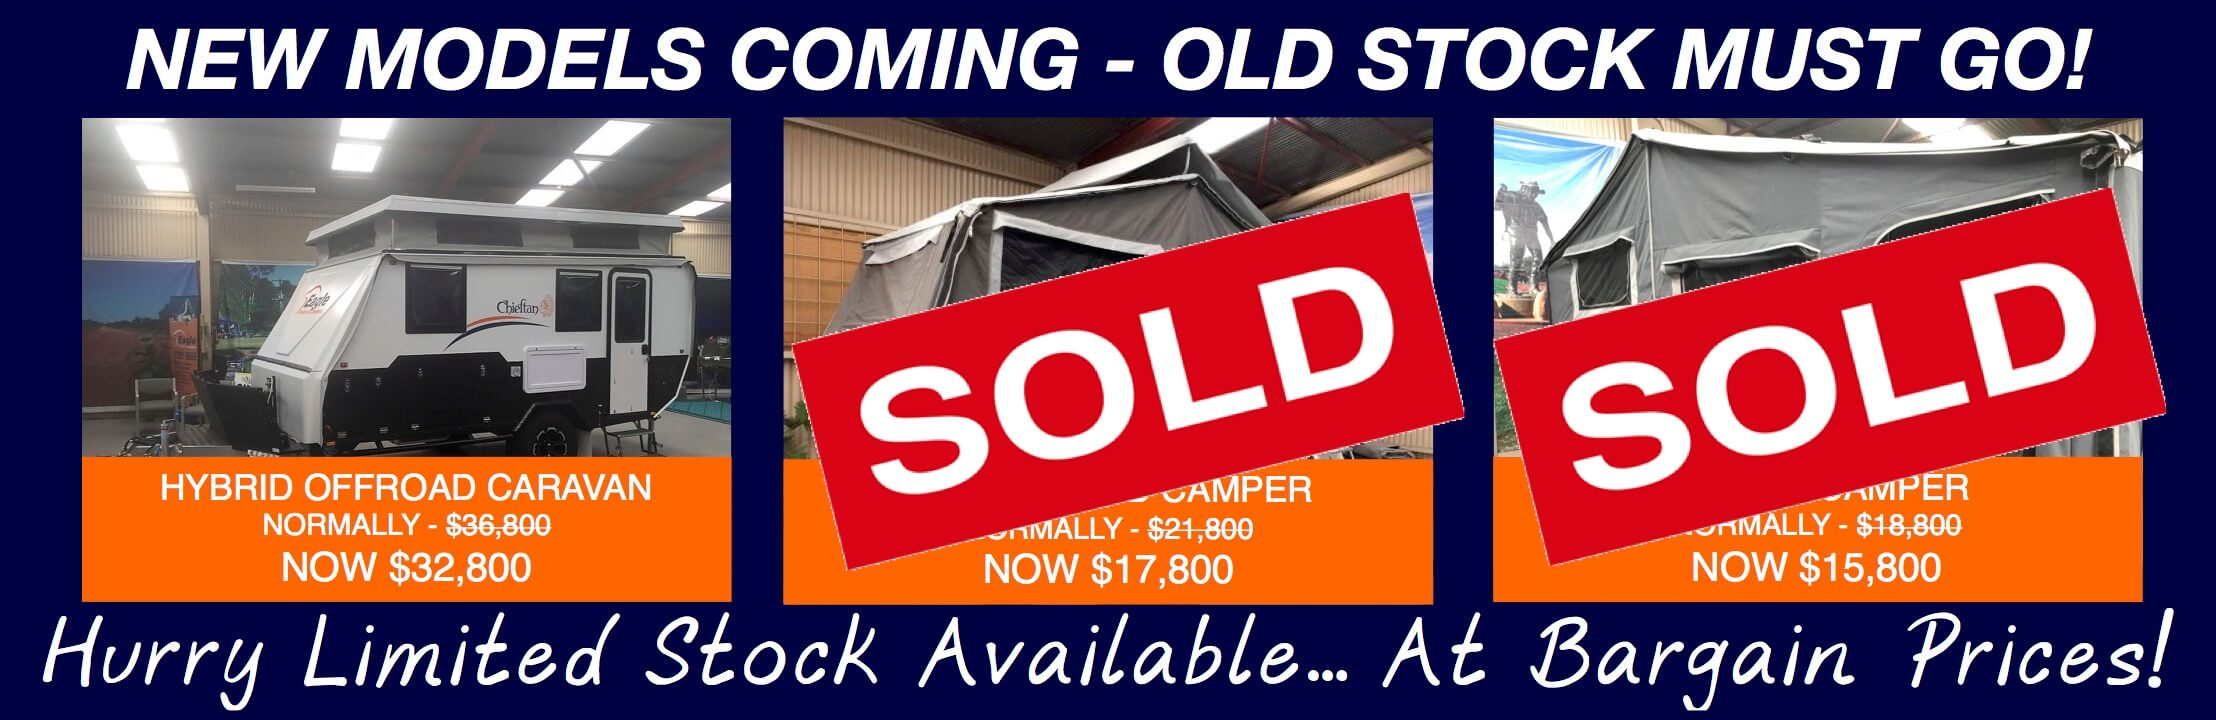 August Camper Trailer Sale Updated